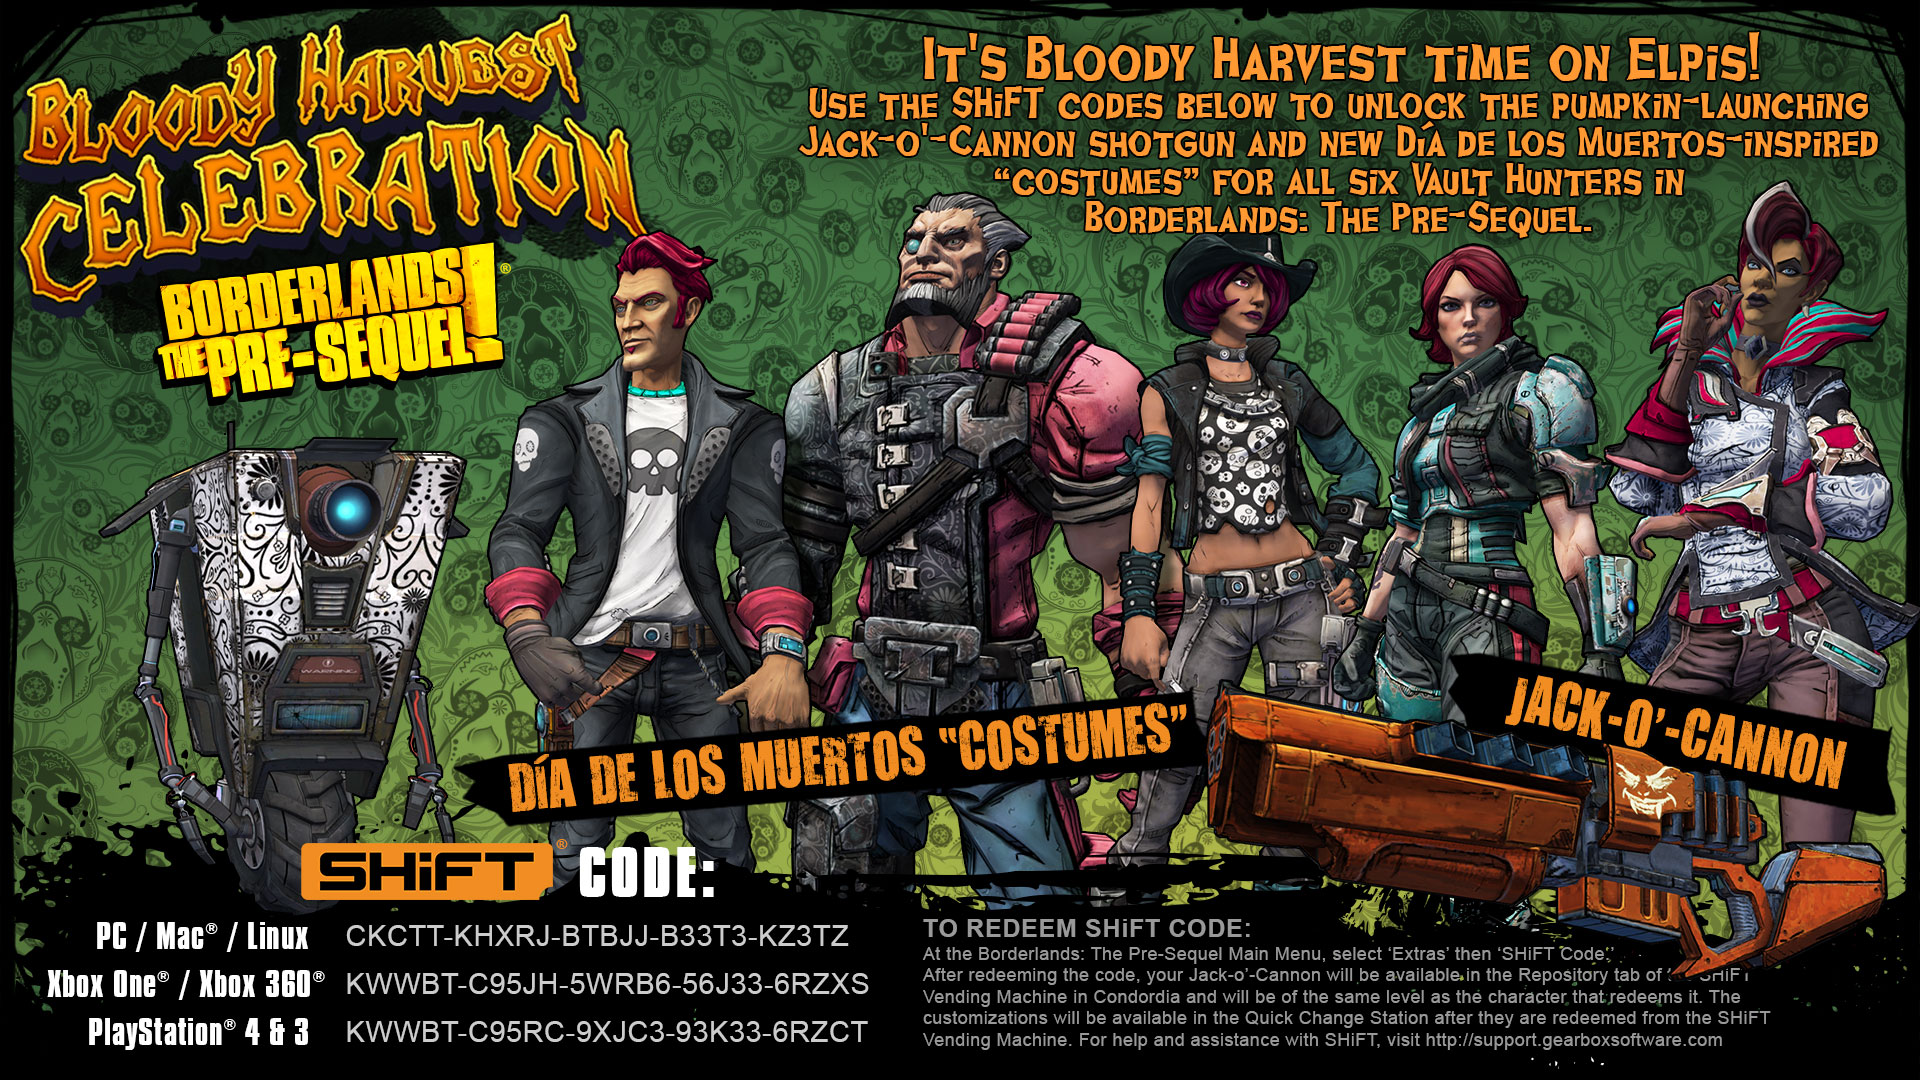 Borderlands: The Pre-Sequel Bloody Harvest SHiFT Codes ... Borderlands The Pre Sequel Shift Codes